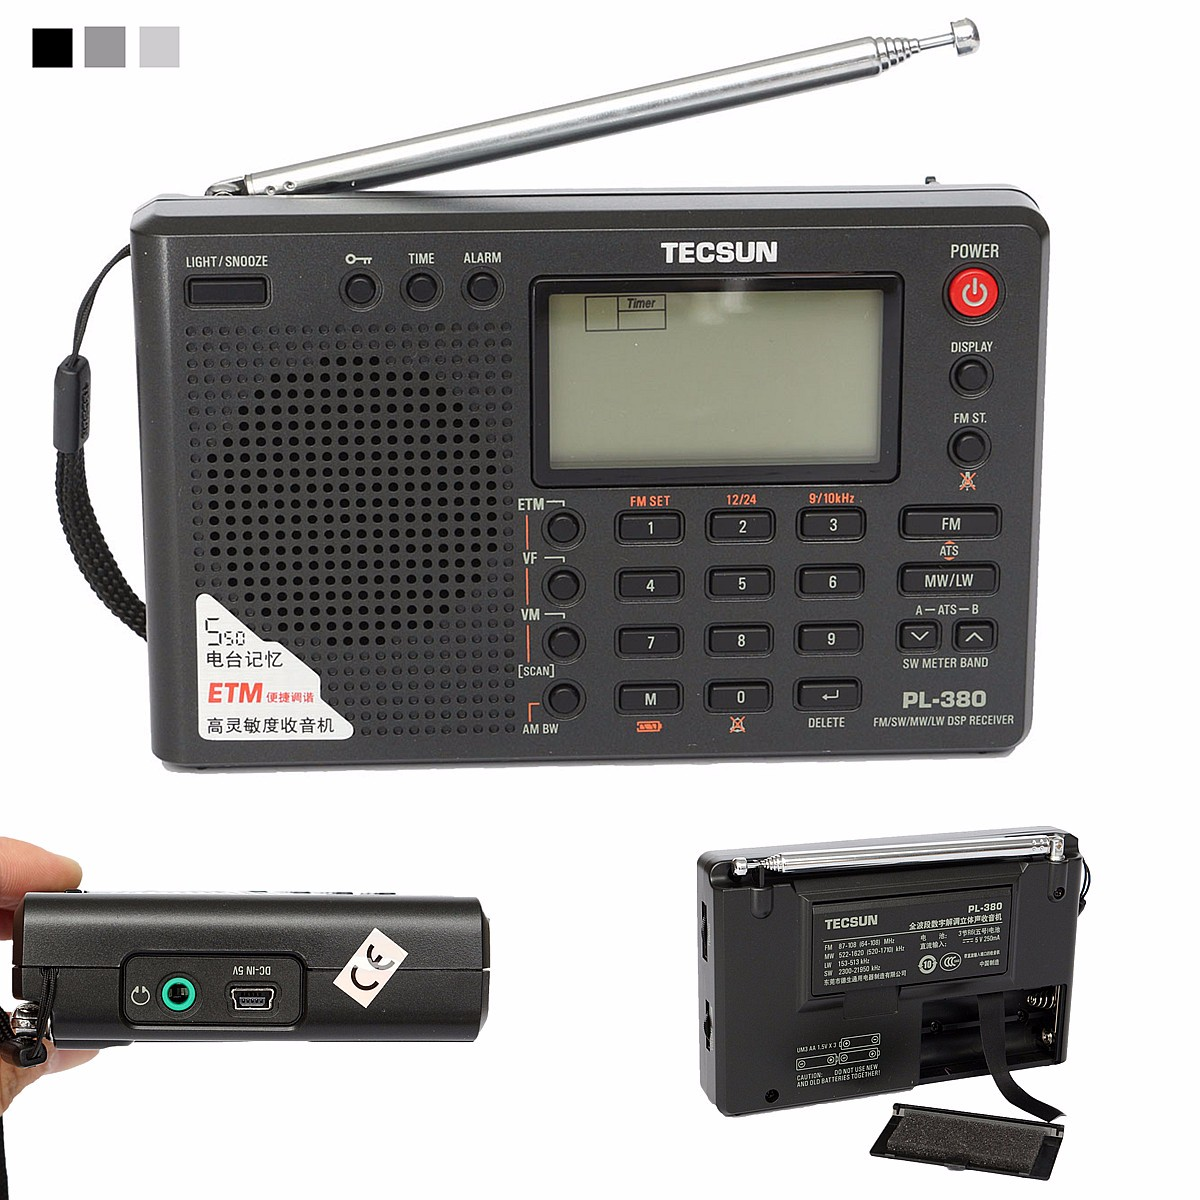 TECSUN PL-380 DSP PLL FM MW SW LW Digital Stereo Radio World-Band Receiver New 3 Colors 7 Tuning Mode Selectable 135x86x29mm degen de1103 radio fm sw mw lw ssb digital radio receiver multiband dsp radio external antenna world band receiver y4162h